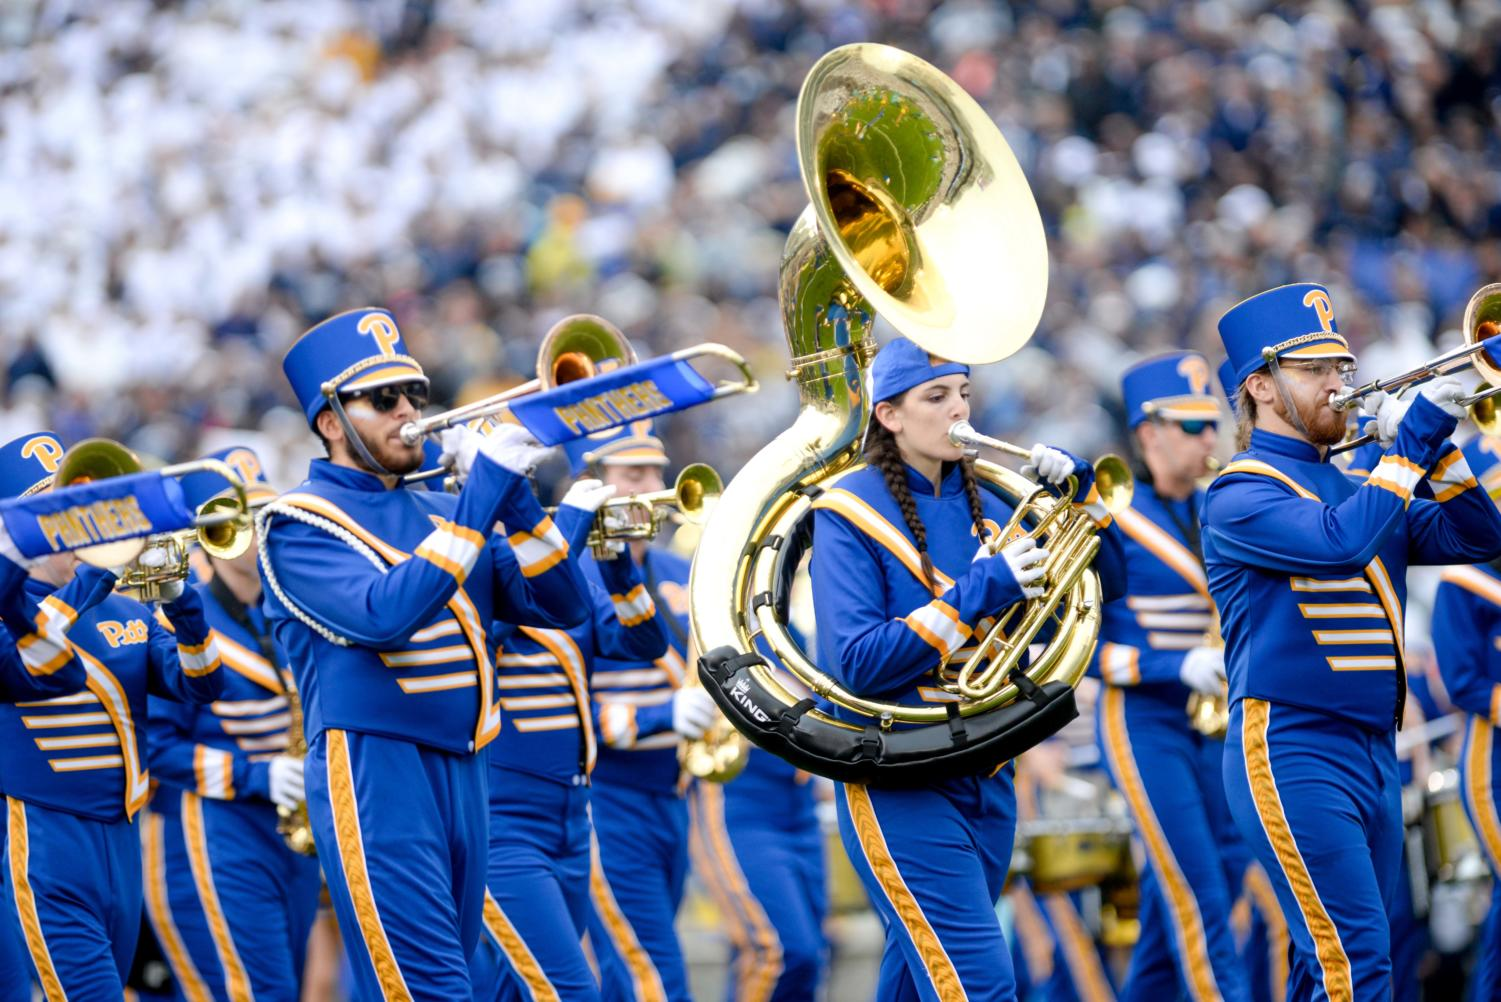 The Pitt band currently uses the Sports Dome and Cost Center for most of its practice, but the new Victory Heights facility will give them a larger and more updated space.